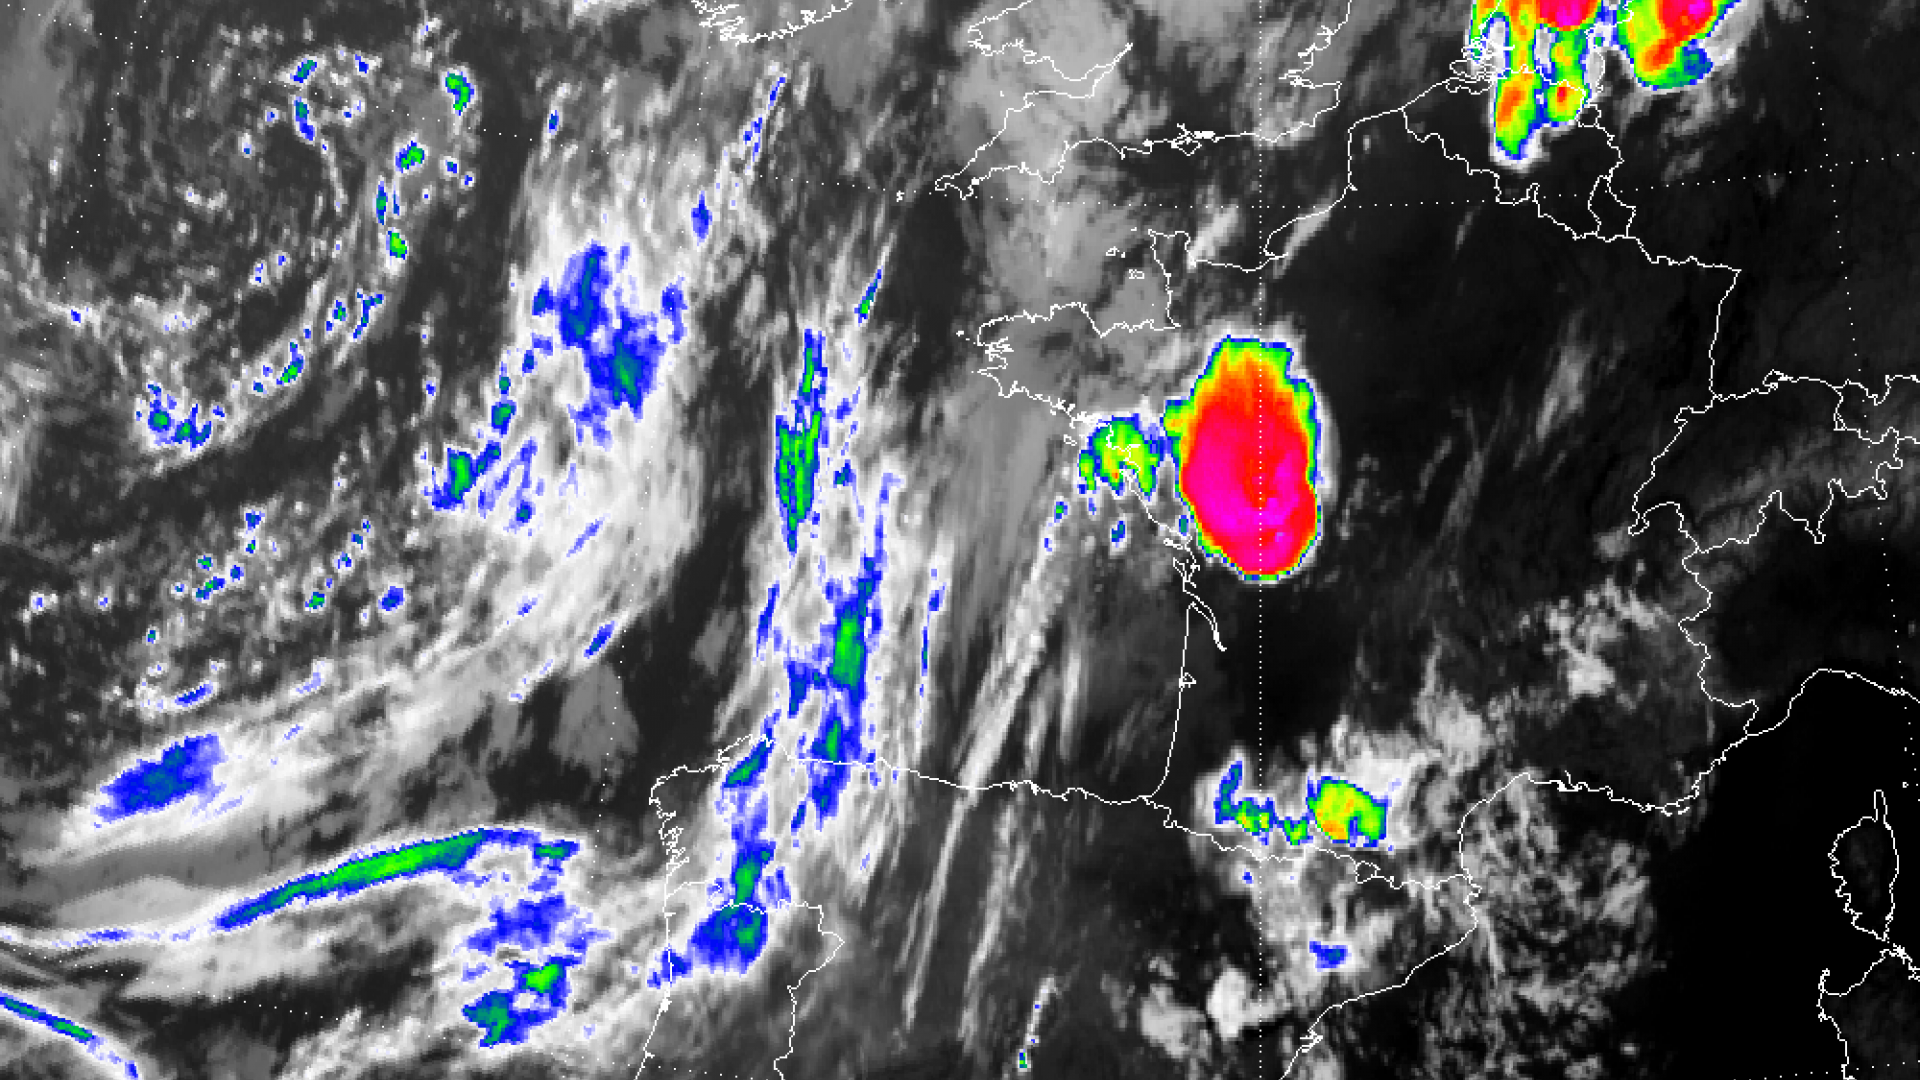 Supercells thunderstorms over parts of France